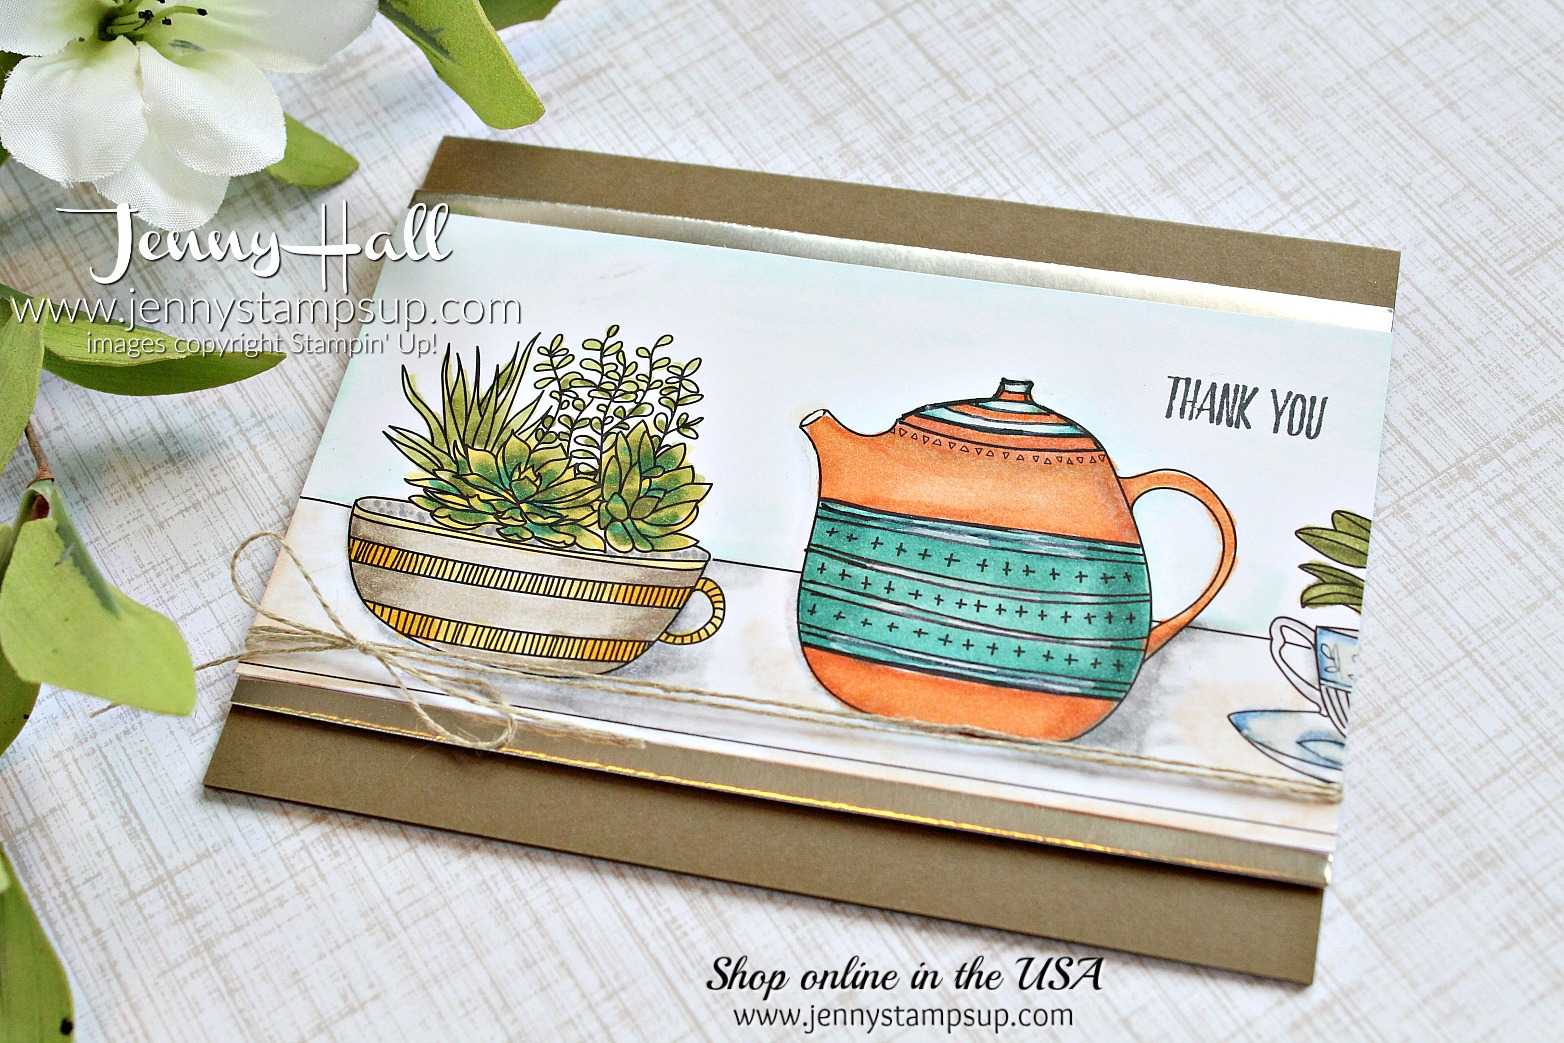 Just Add Color DSP card by Jenny Hall using #stampinup products at www.jennystampsup.com for #cardmaking #scrapbooking #videotutorial #cardmakingtechniques #adultcoloring #jennystampsup #jennyhalldesign #jennyhallstampinup